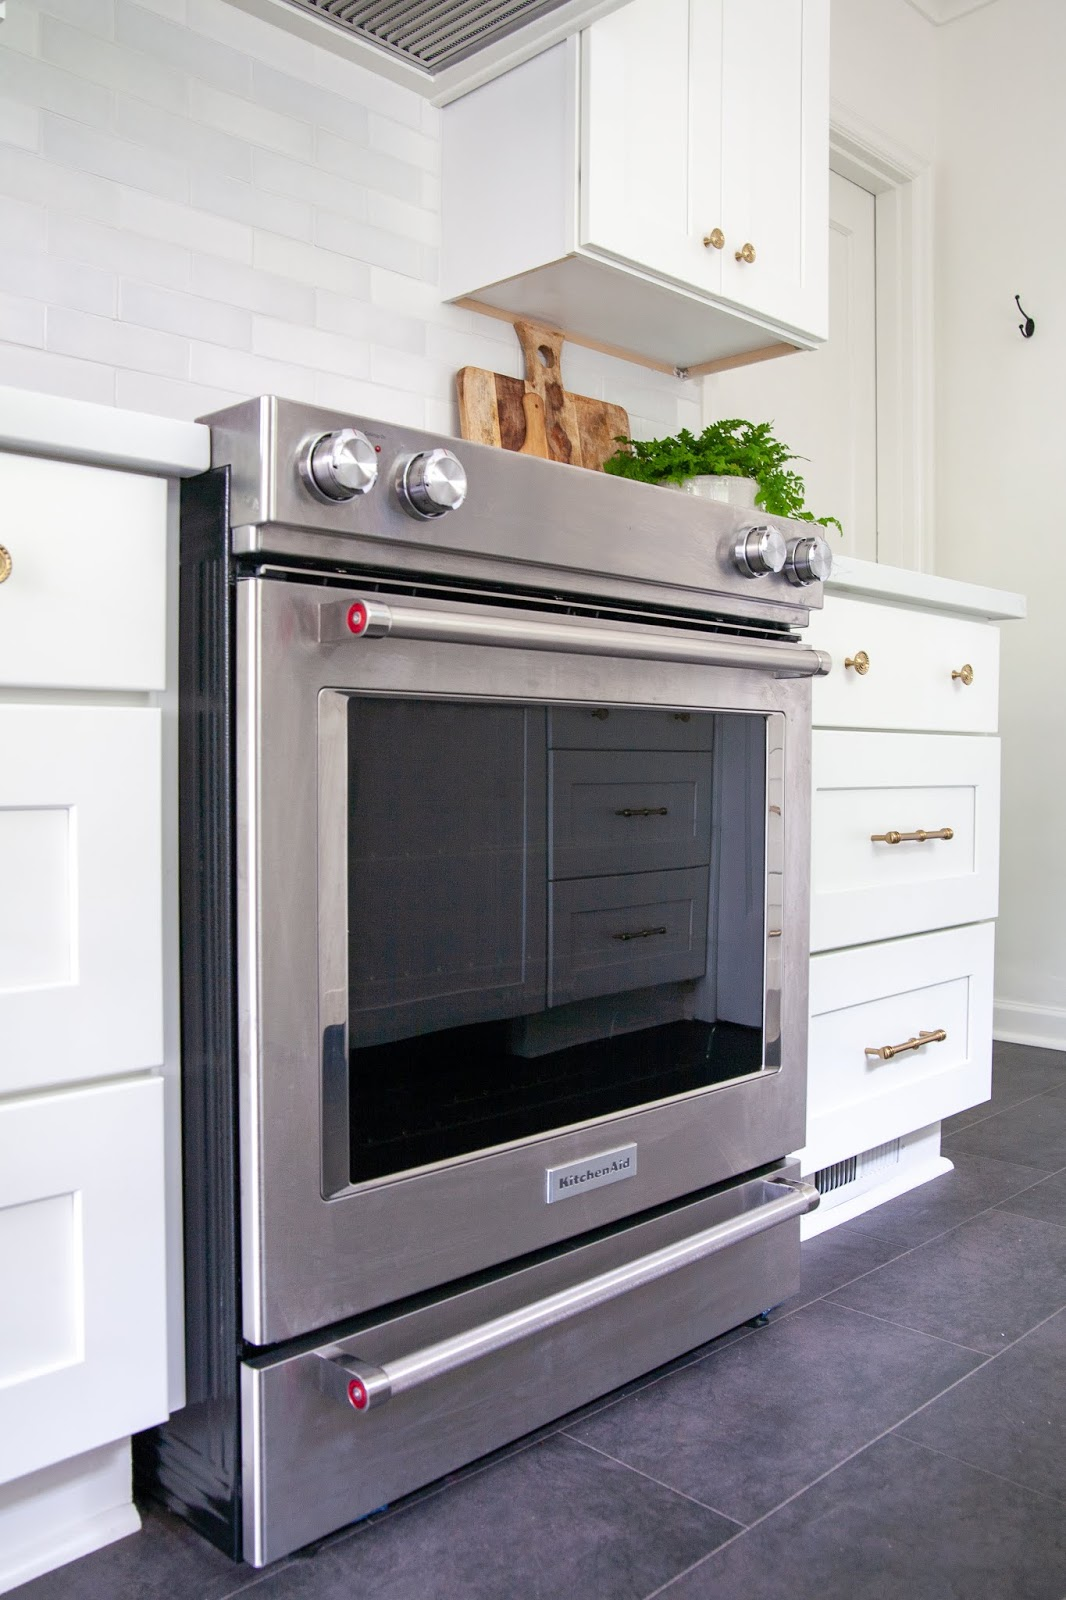 How To Save 4k On Appliances For A Full Kitchen Reno With